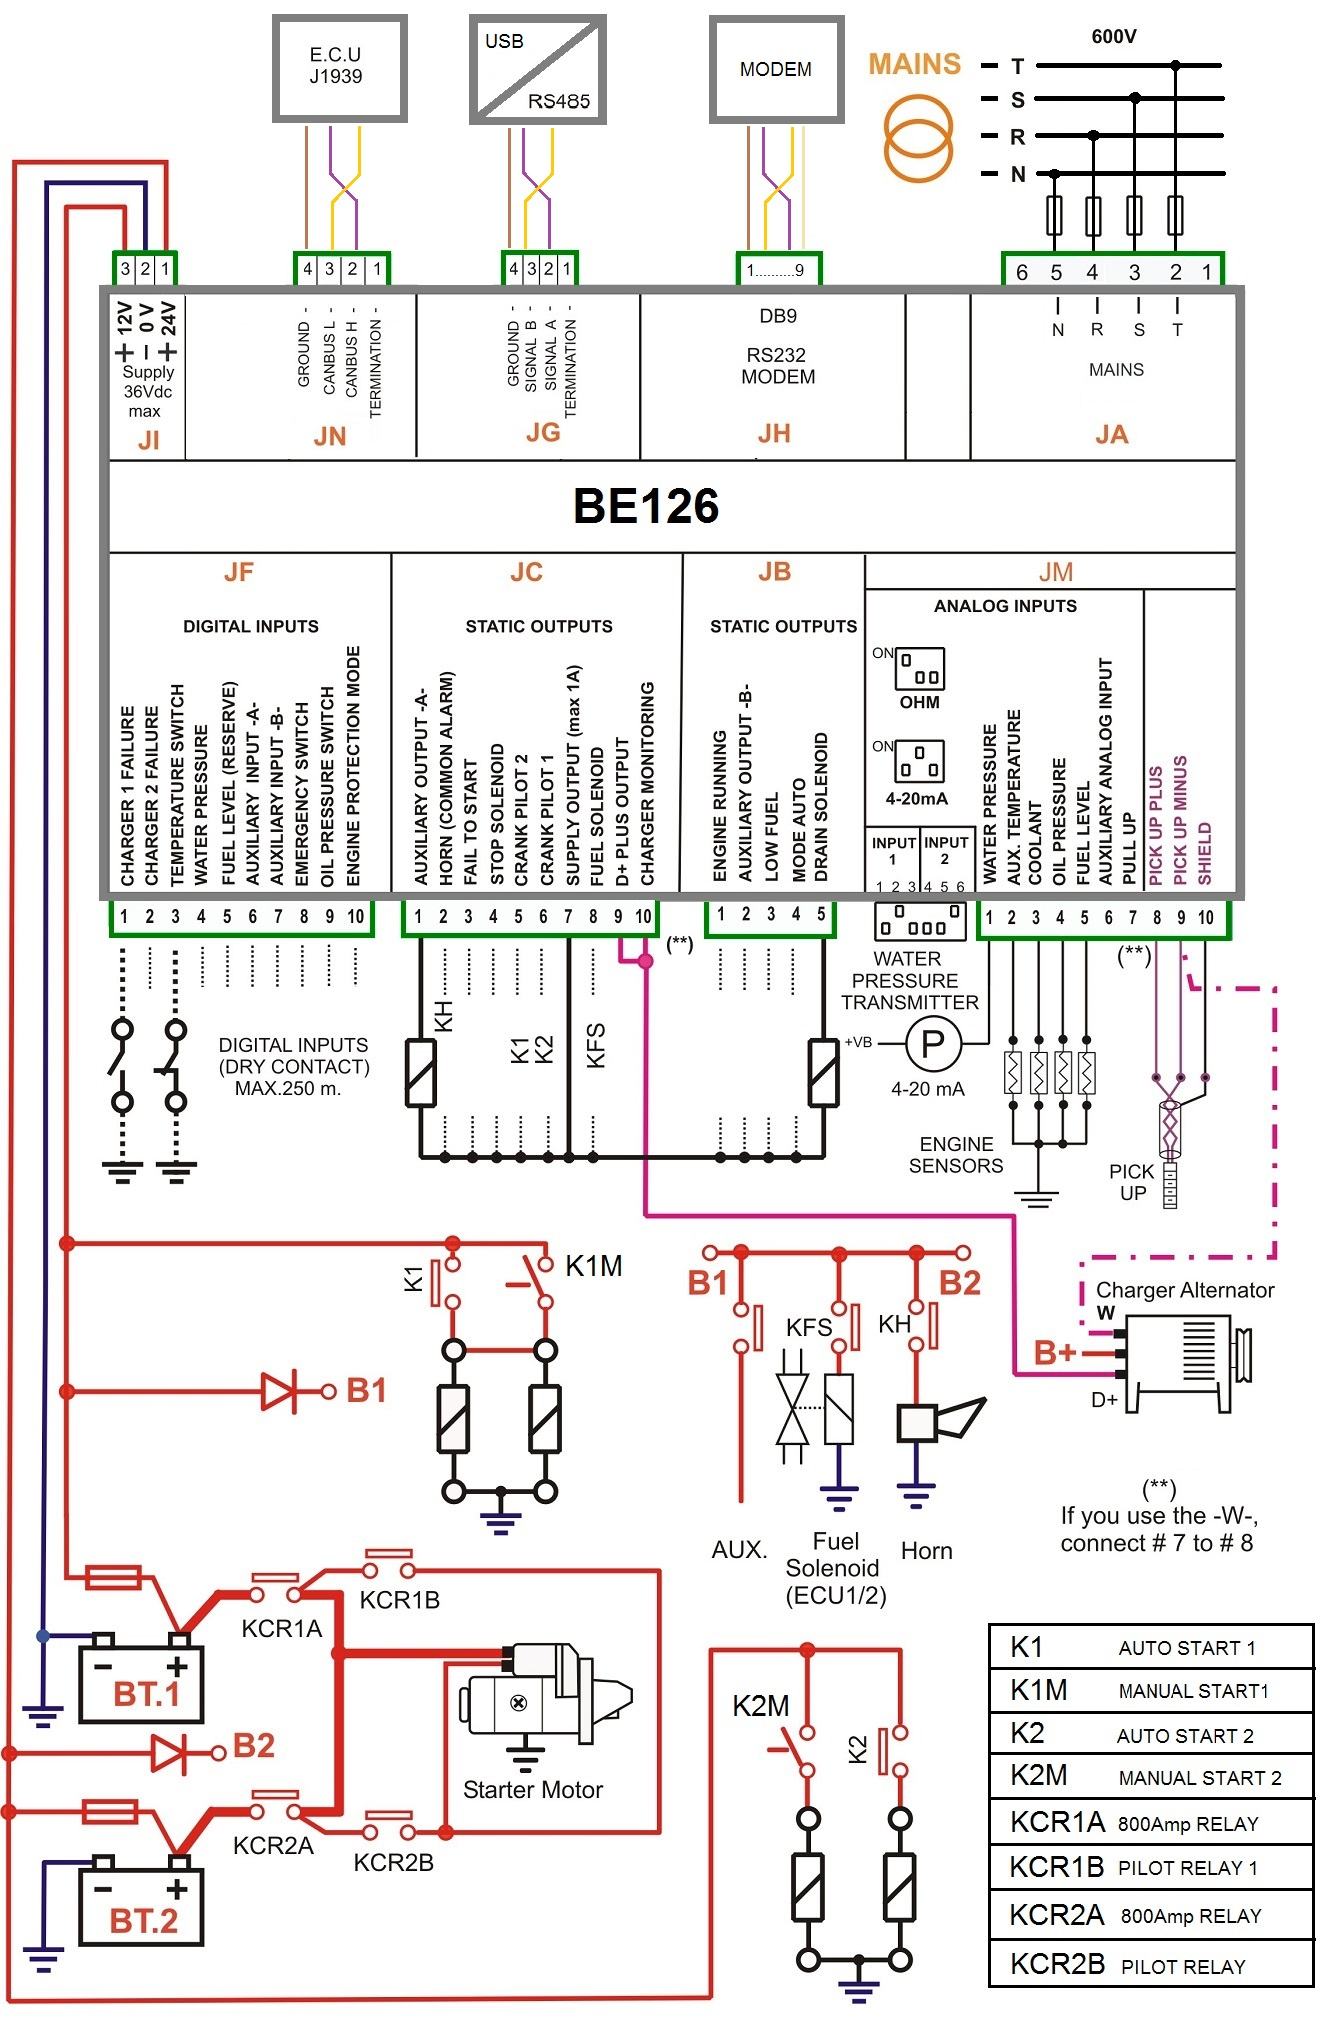 Fire Pump Controller Wiring Diagram Generator Controllers Electric Fire Pump Schematic